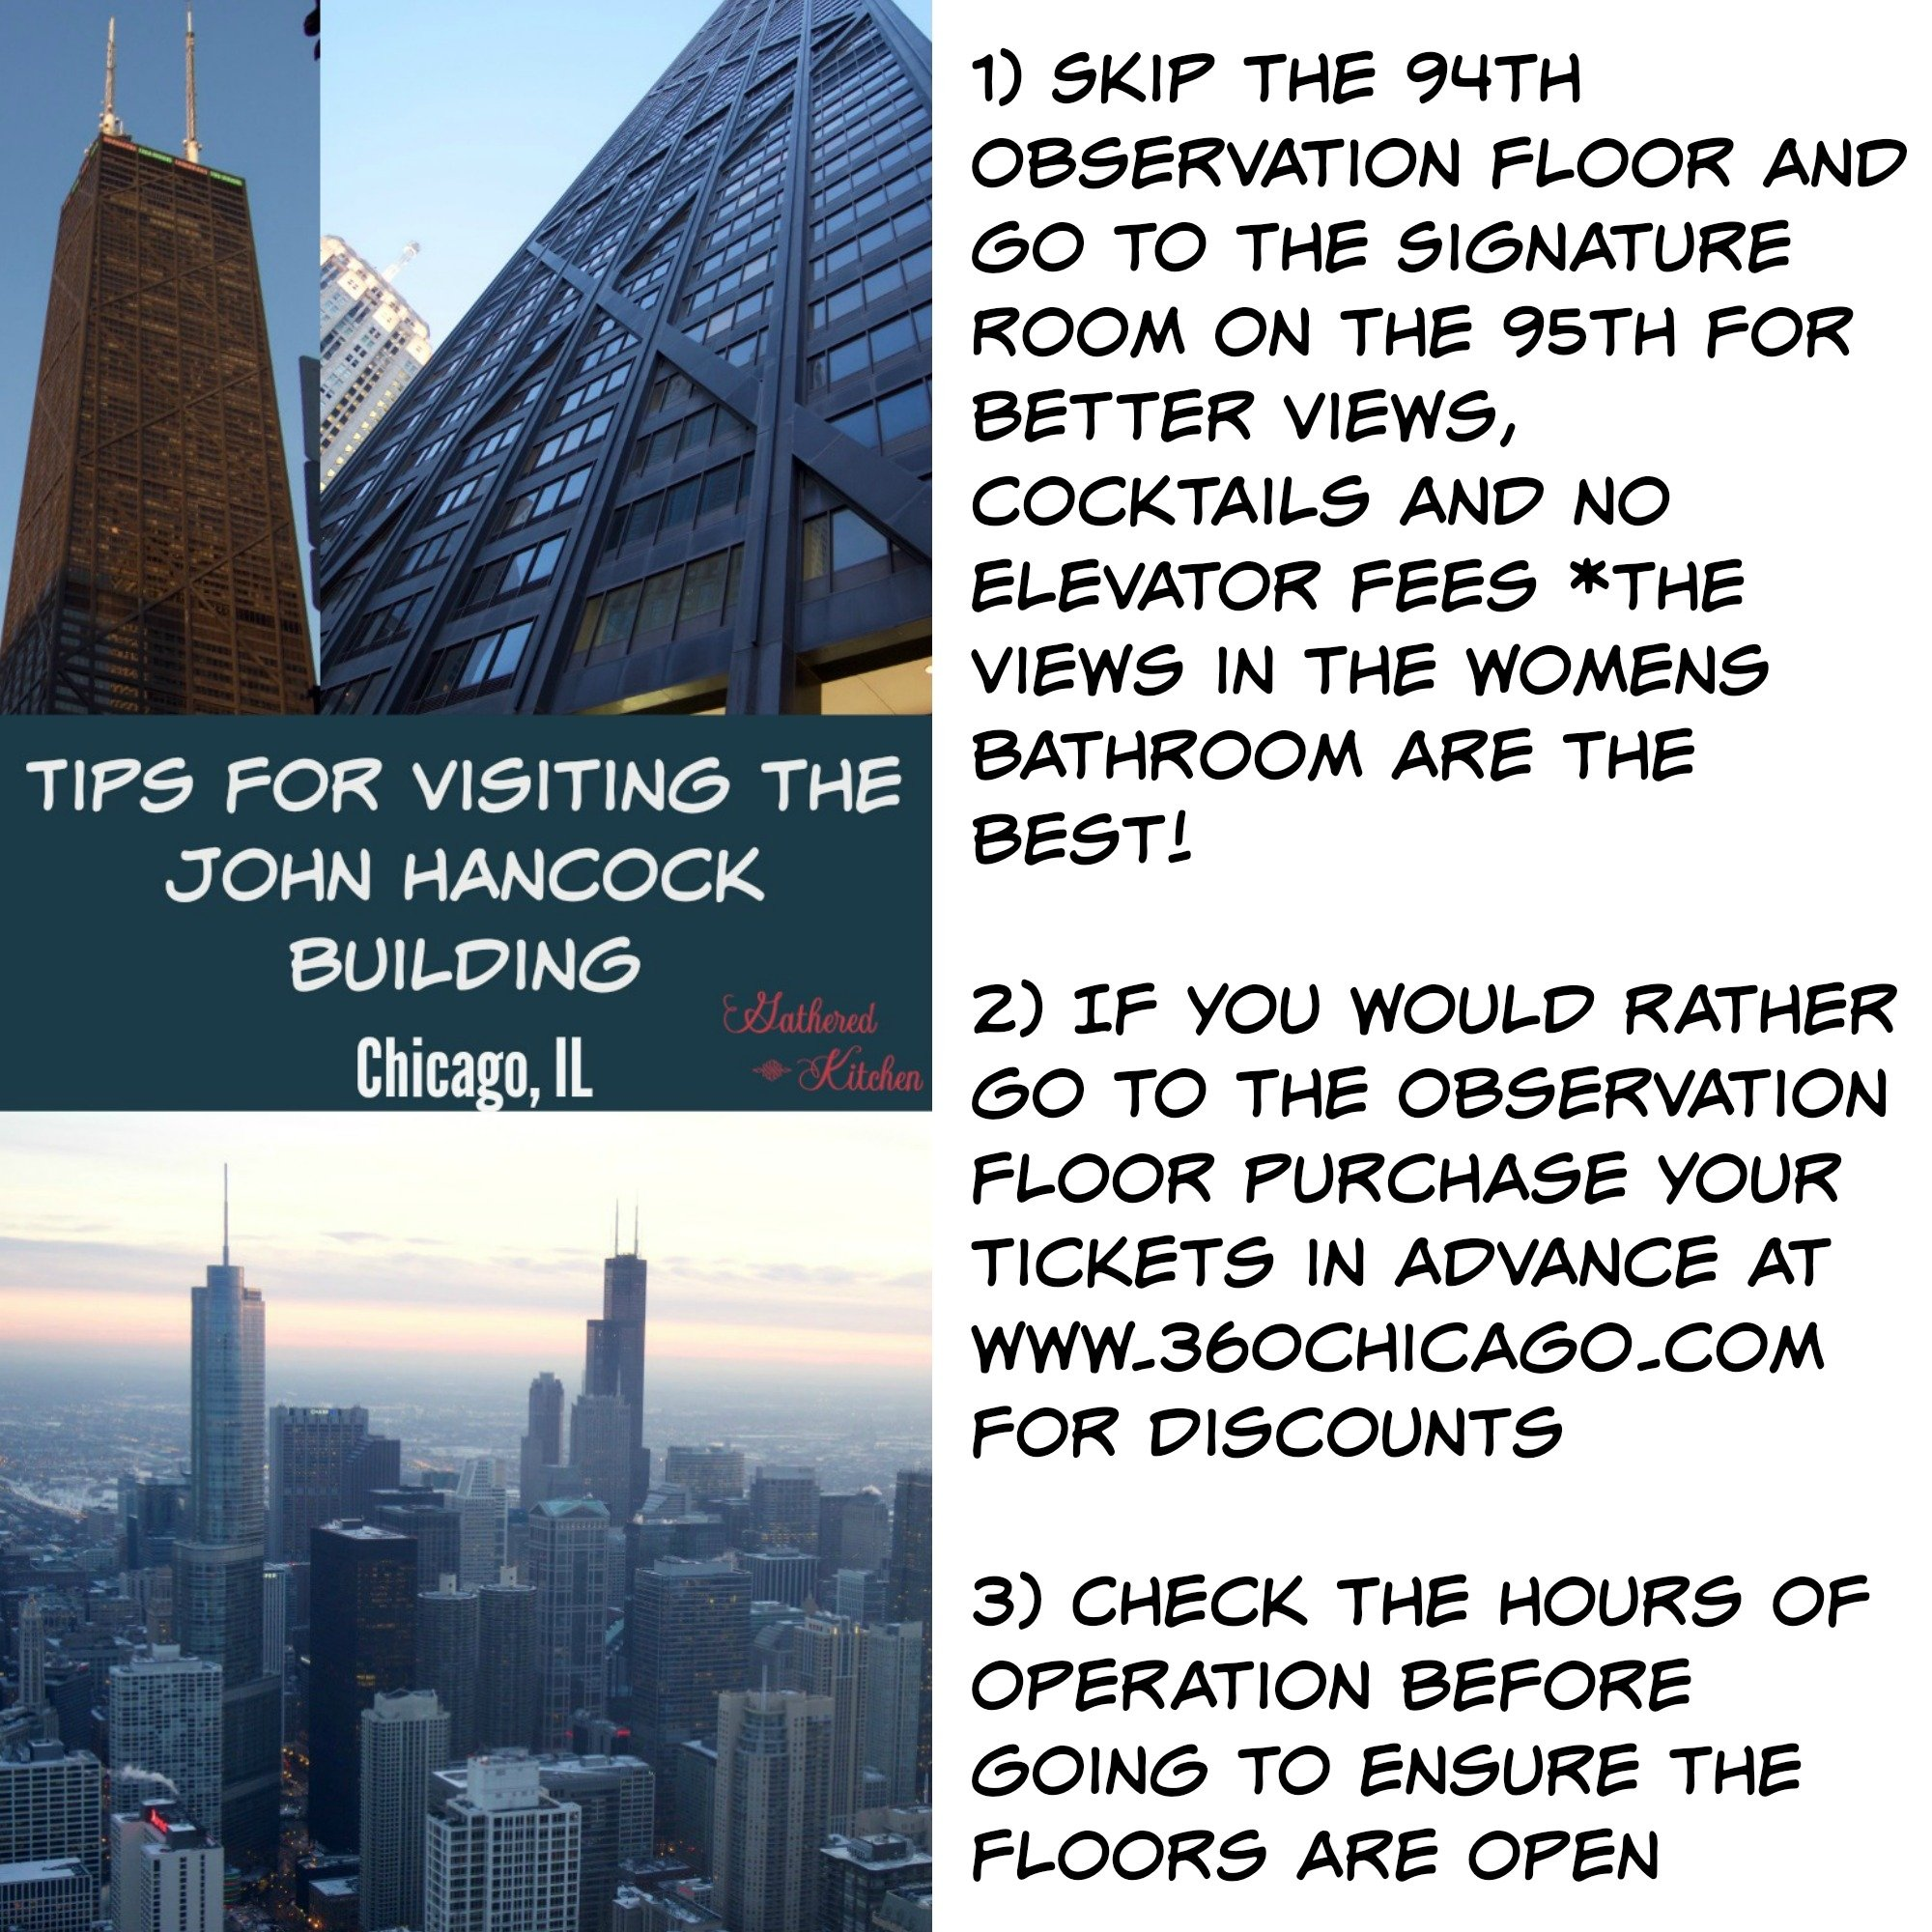 tips-for-visiting-the-john-hancock-building